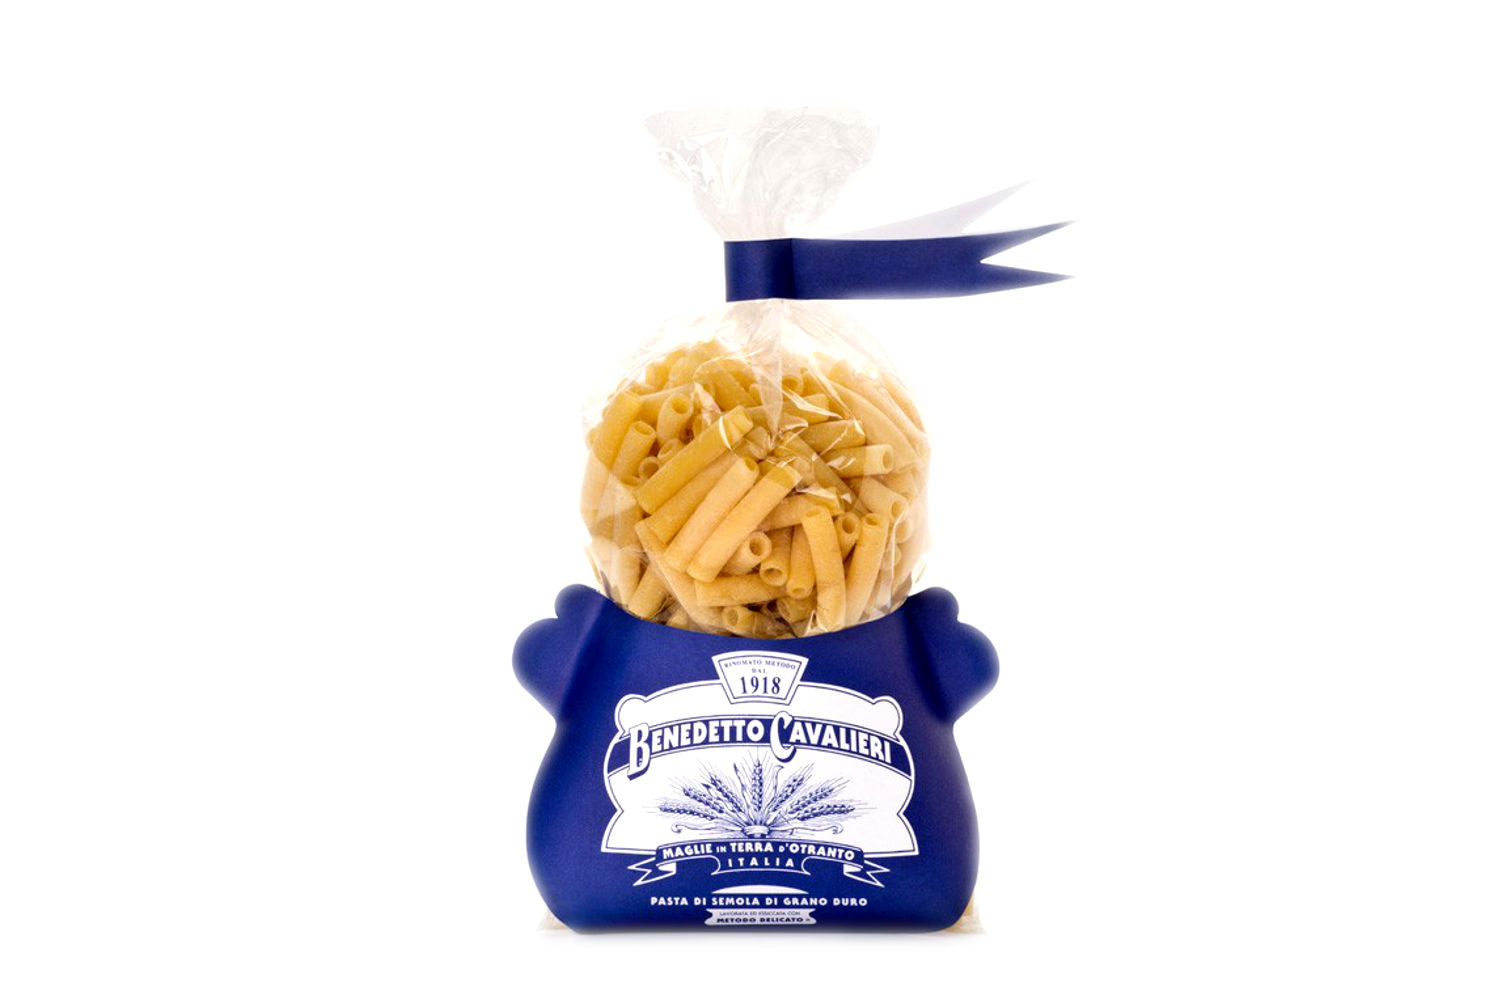 Benedetto Cavalieri Maccheroni Italian Pasta 500g | Shop on the Red Beetle